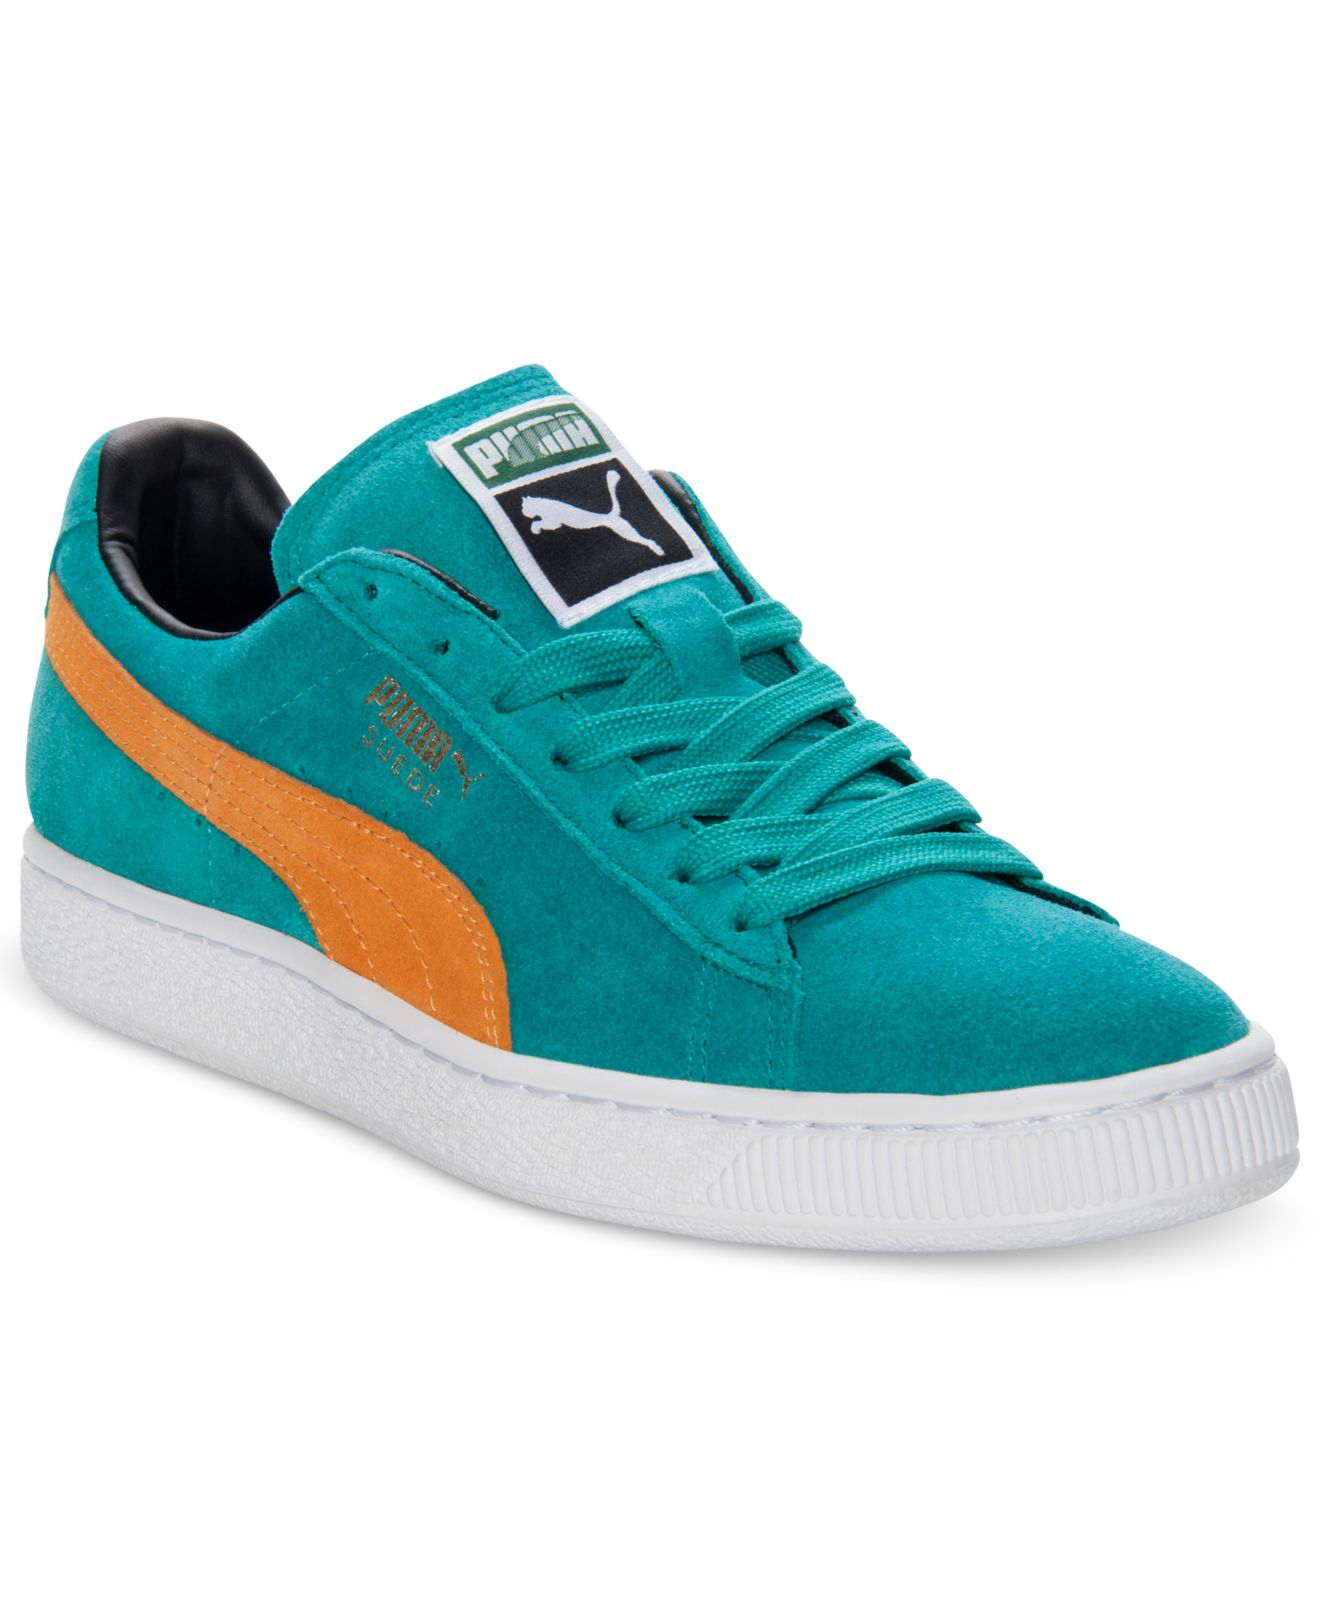 Lyst - PUMA Men S Suede Classic Casual Sneakers From Finish Line in ... 009c8fd01